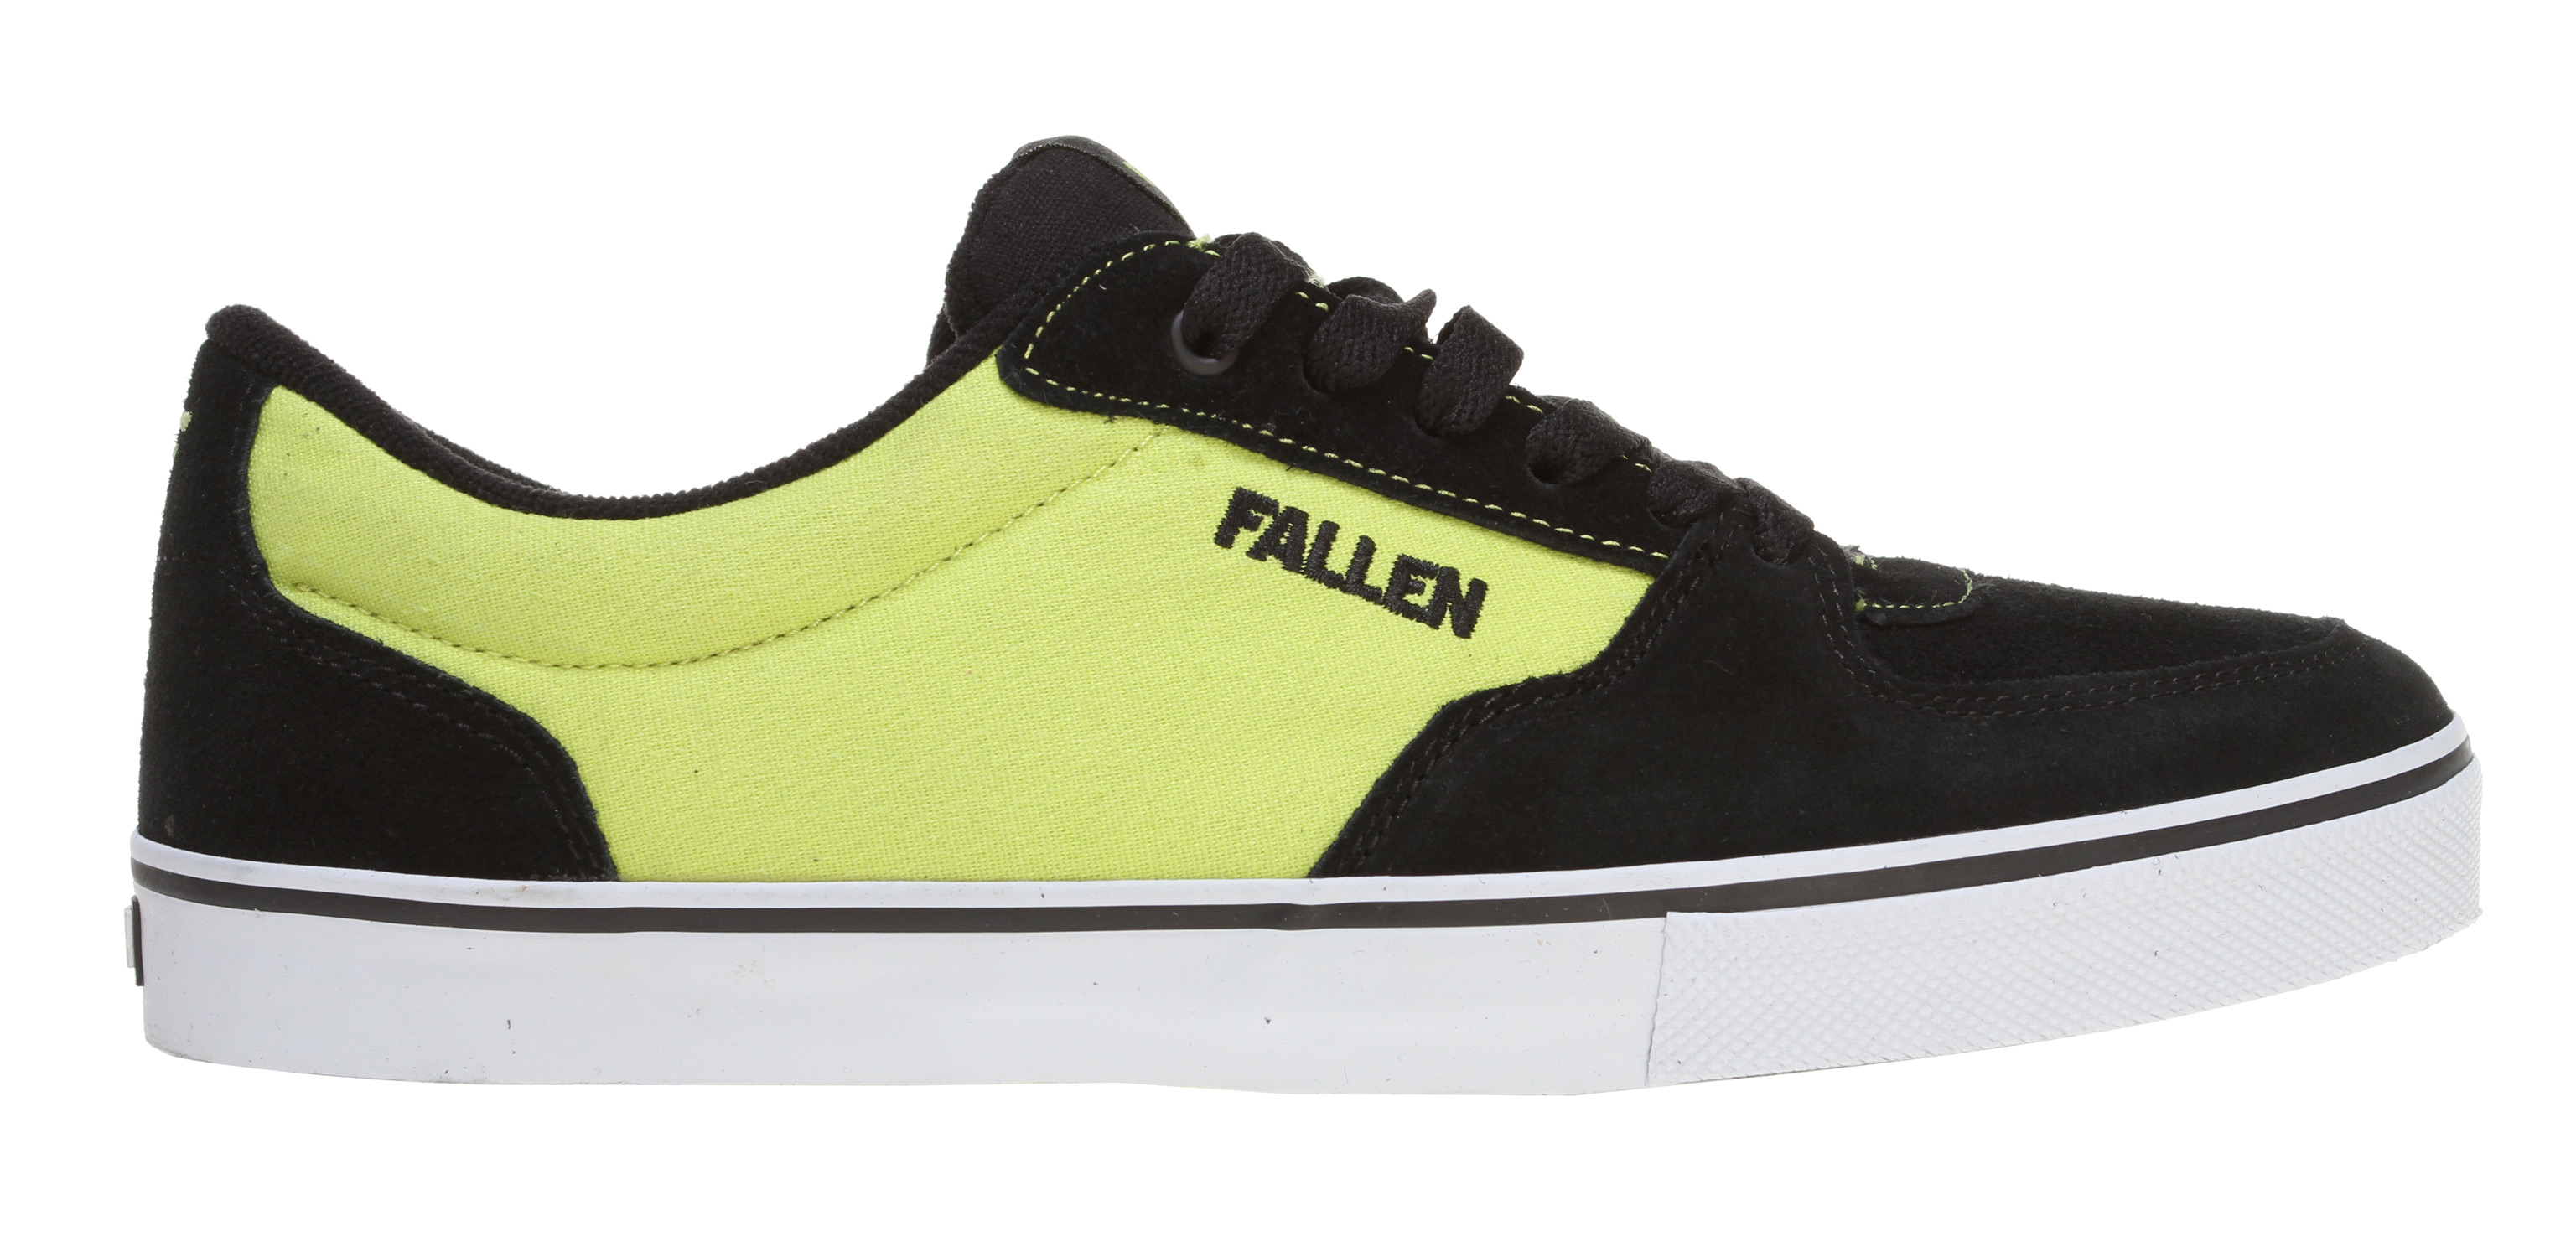 Skateboard Key Features of the Fallen Mission Skate Shoes: Genuine heavy duty suede and/or canvas upper Select models feature denim Asymmetric stabilizer for medial upper support Vulcanized sole construction EVA insole to absorb impact and provide cushioning Highly abrasion-resistant outsole for wear and durability - $42.95